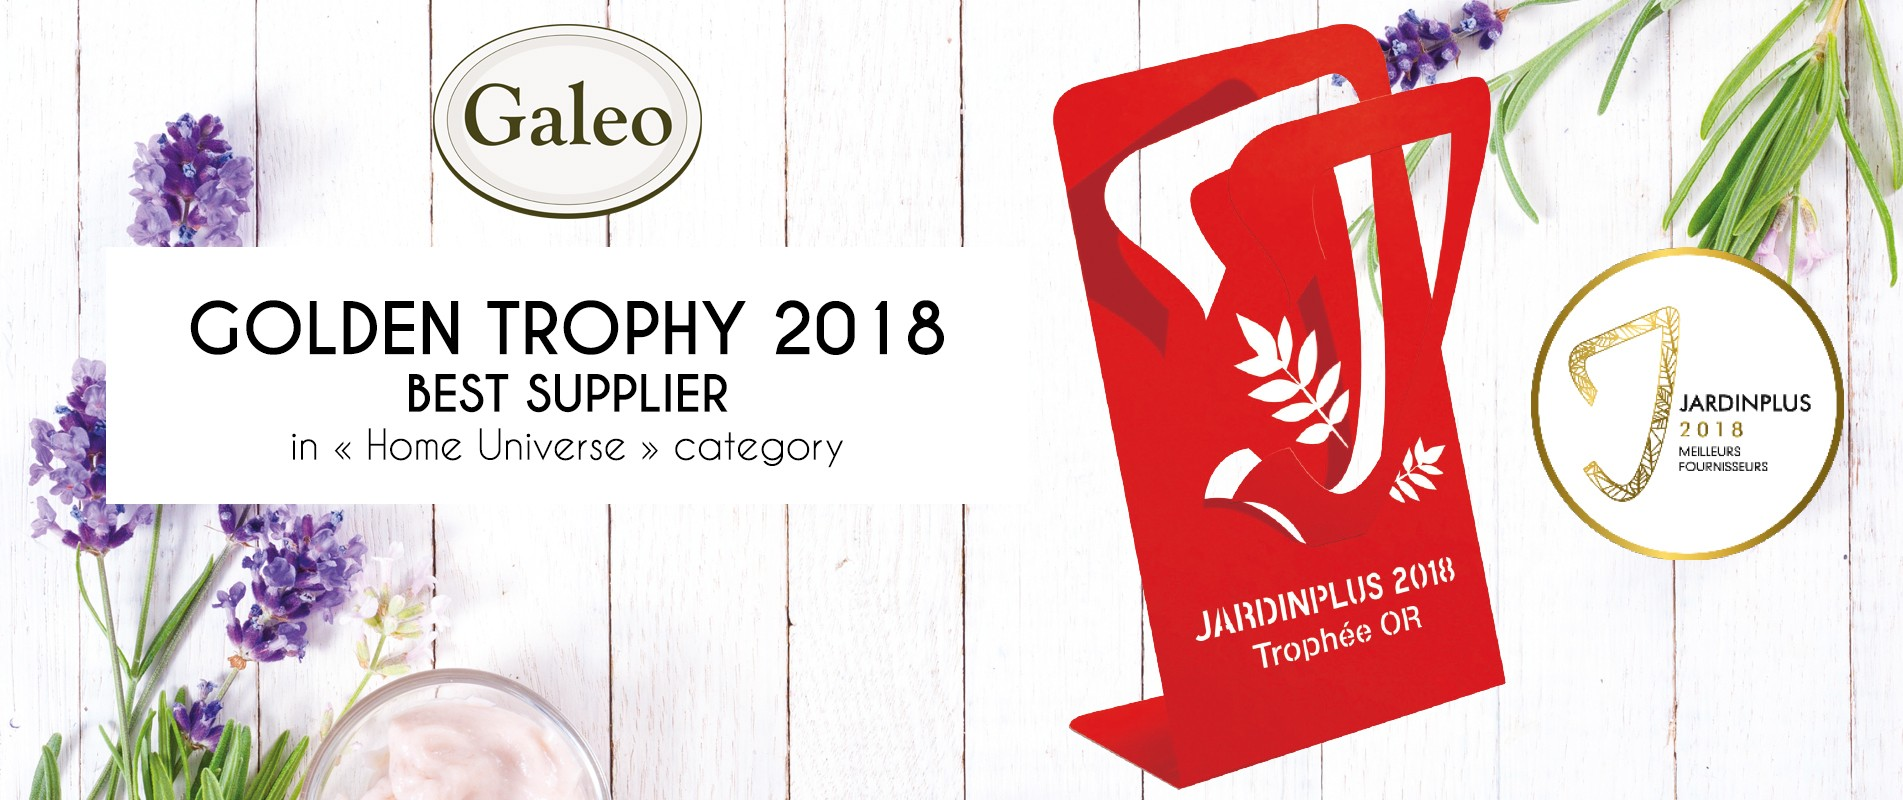 Golden trophy 2018 best supplier in home universe category